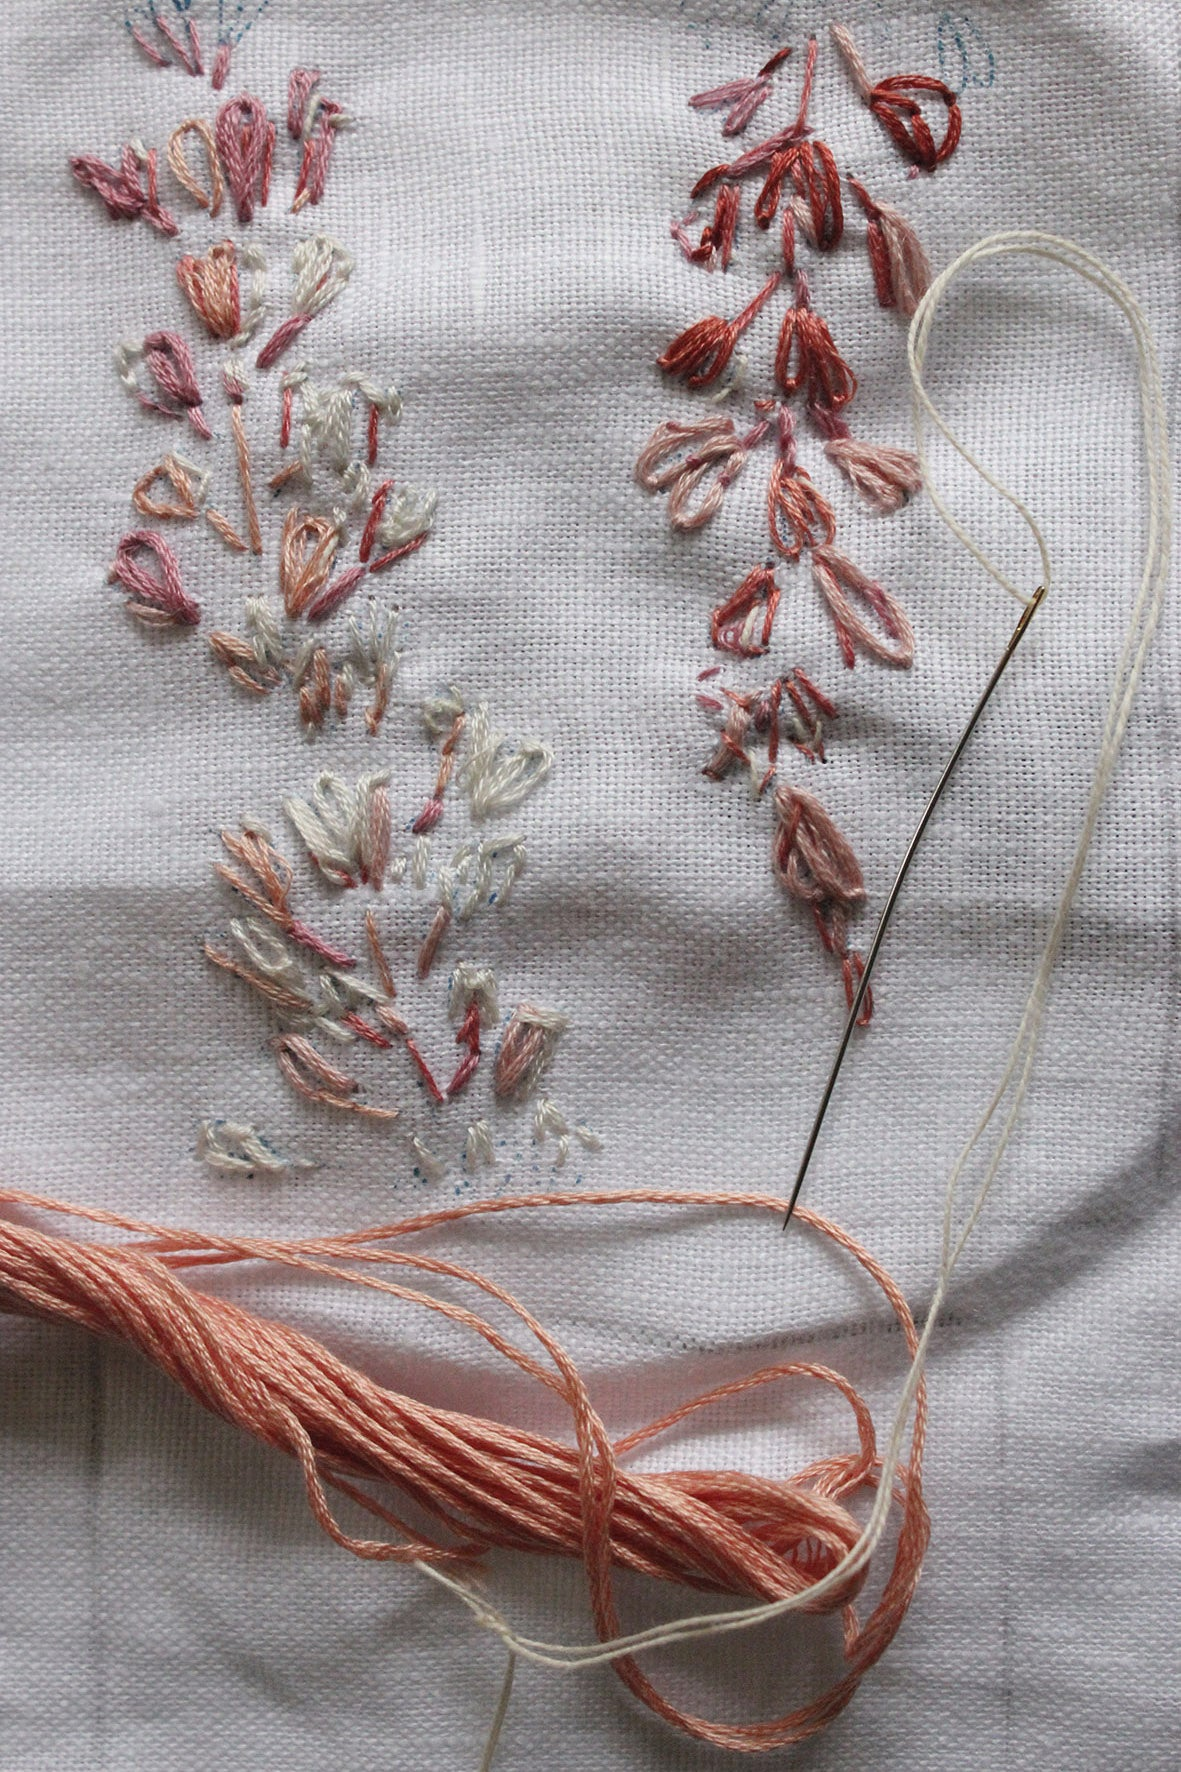 THE SUNDAY STITCHING SCHOOL - SUNDAY 20TH OCTOBER 2019 (AFTERNOON)